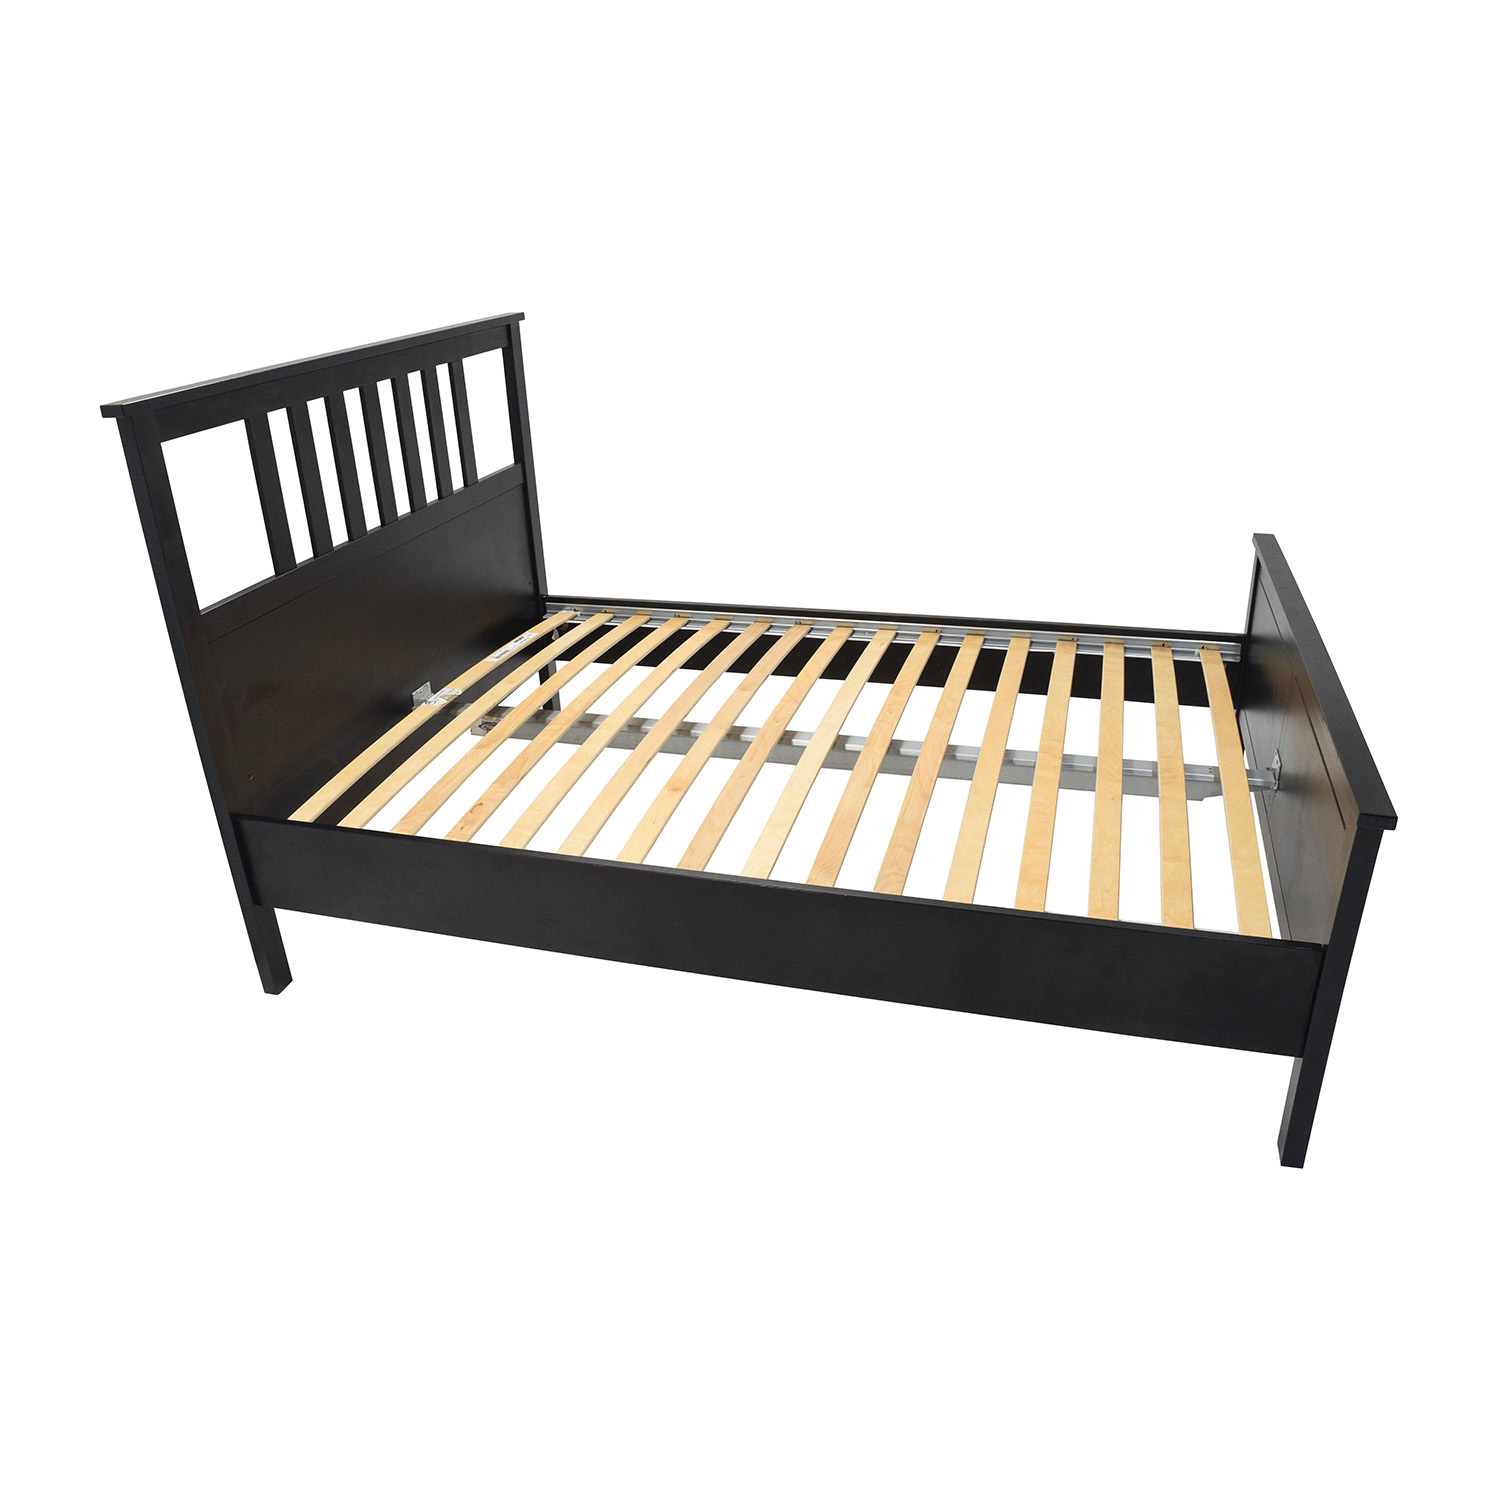 57 OFF IKEA Queen Hemnes Bed Frame Beds